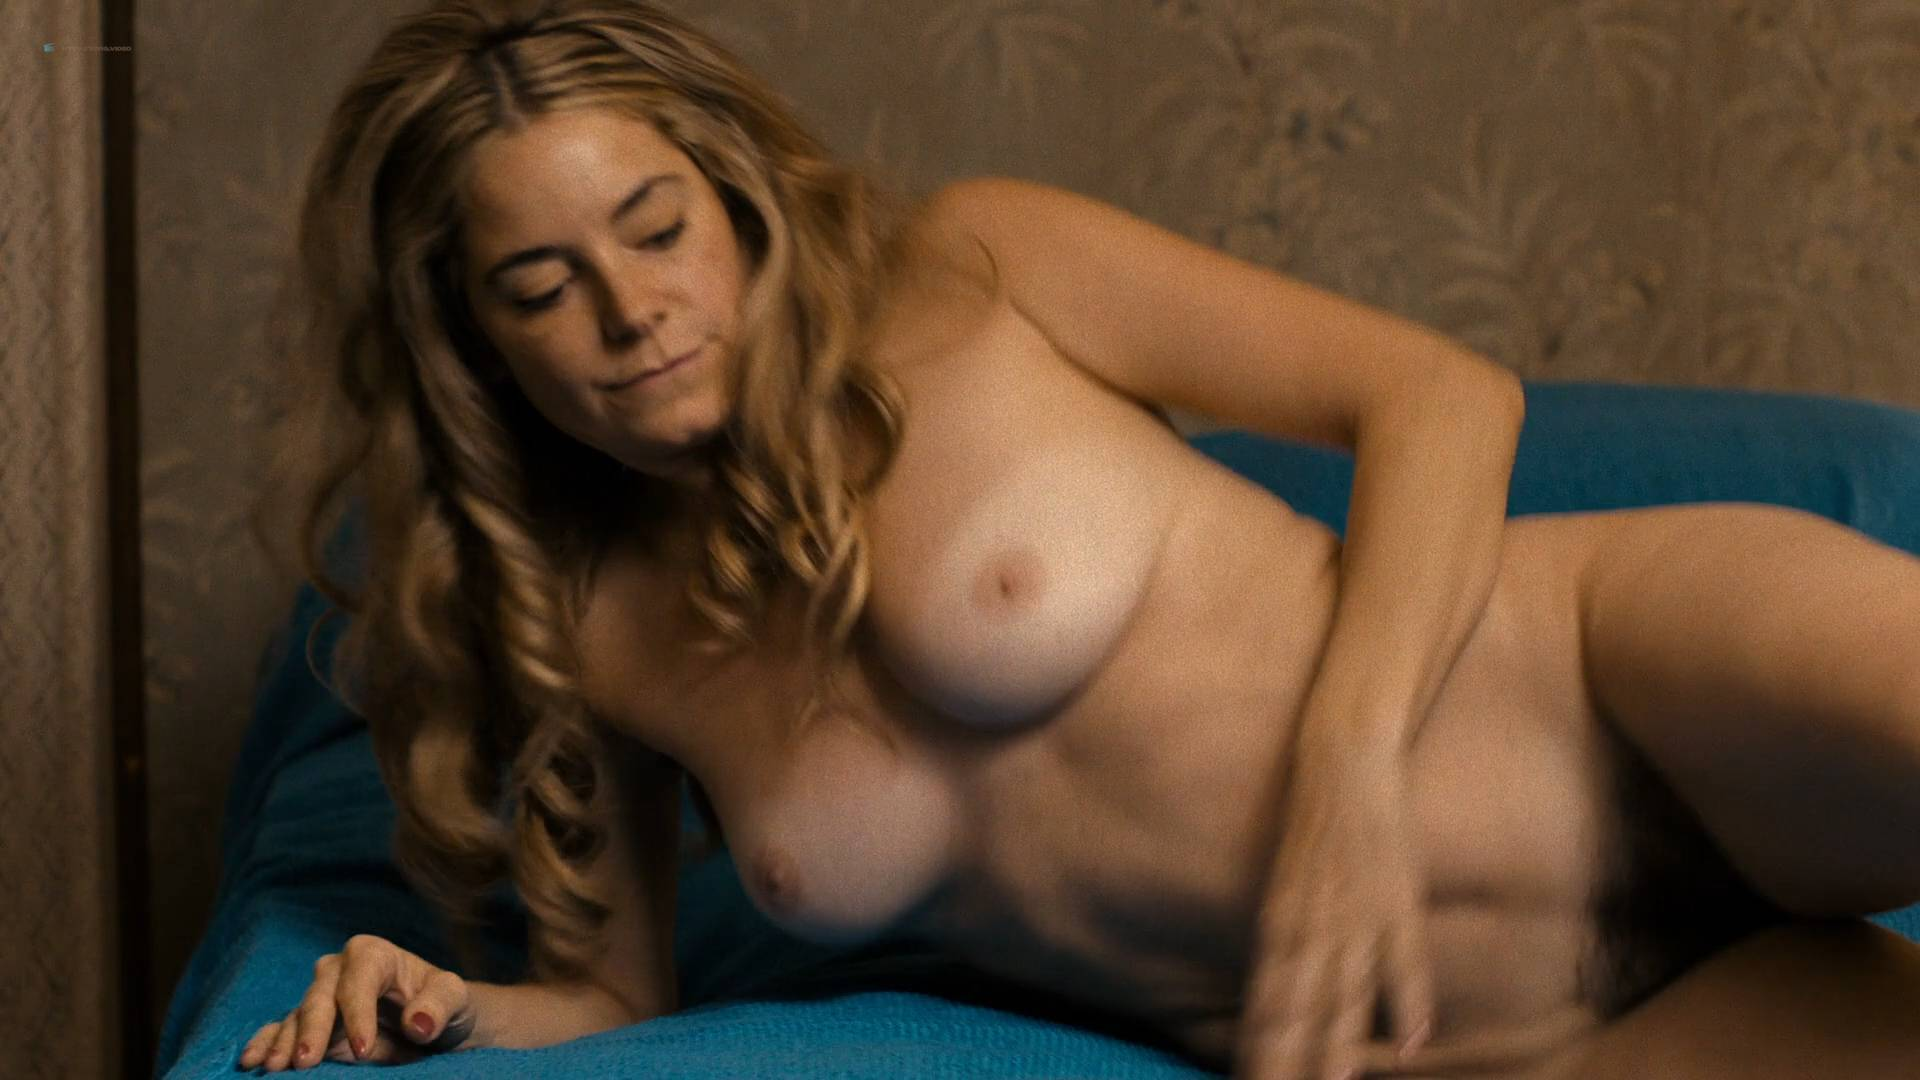 from Matthias maggie gyllenhaal nude video